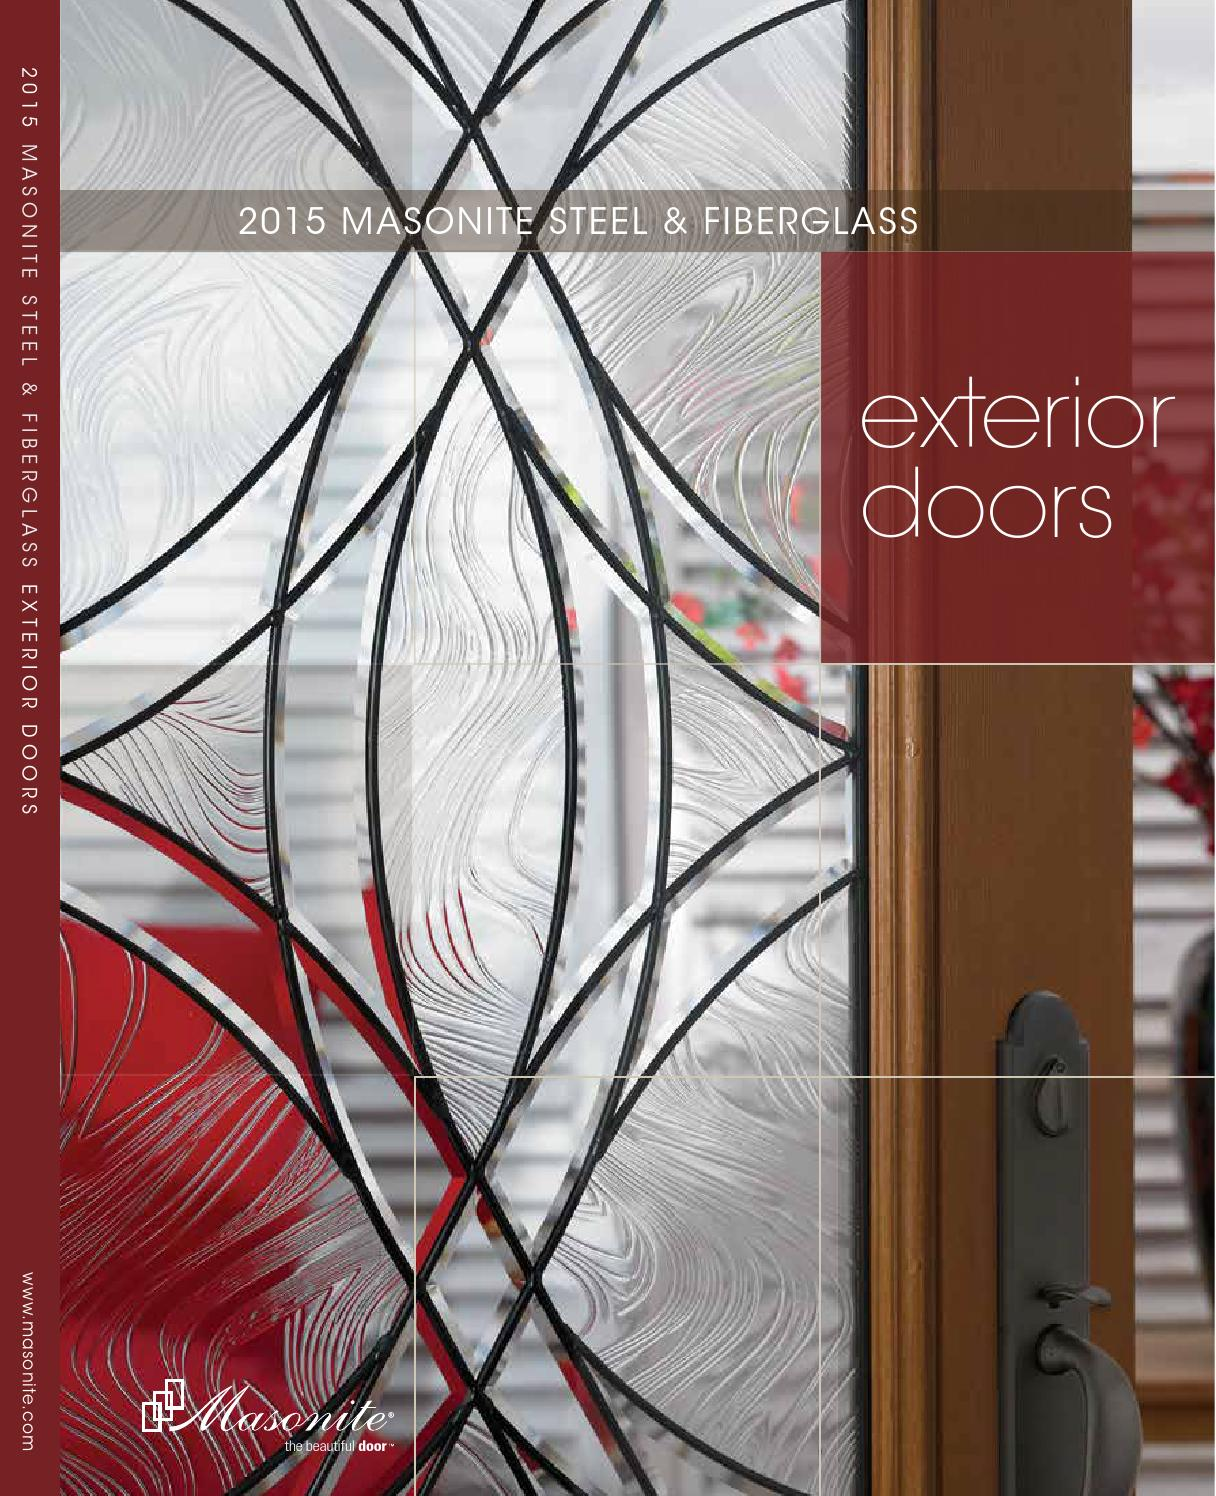 1496 #722C27 2015 Masonite Exterior Door Catalog By Meek Lumber Company Issuu wallpaper Masonite Fiberglass Exterior Doors 43651216